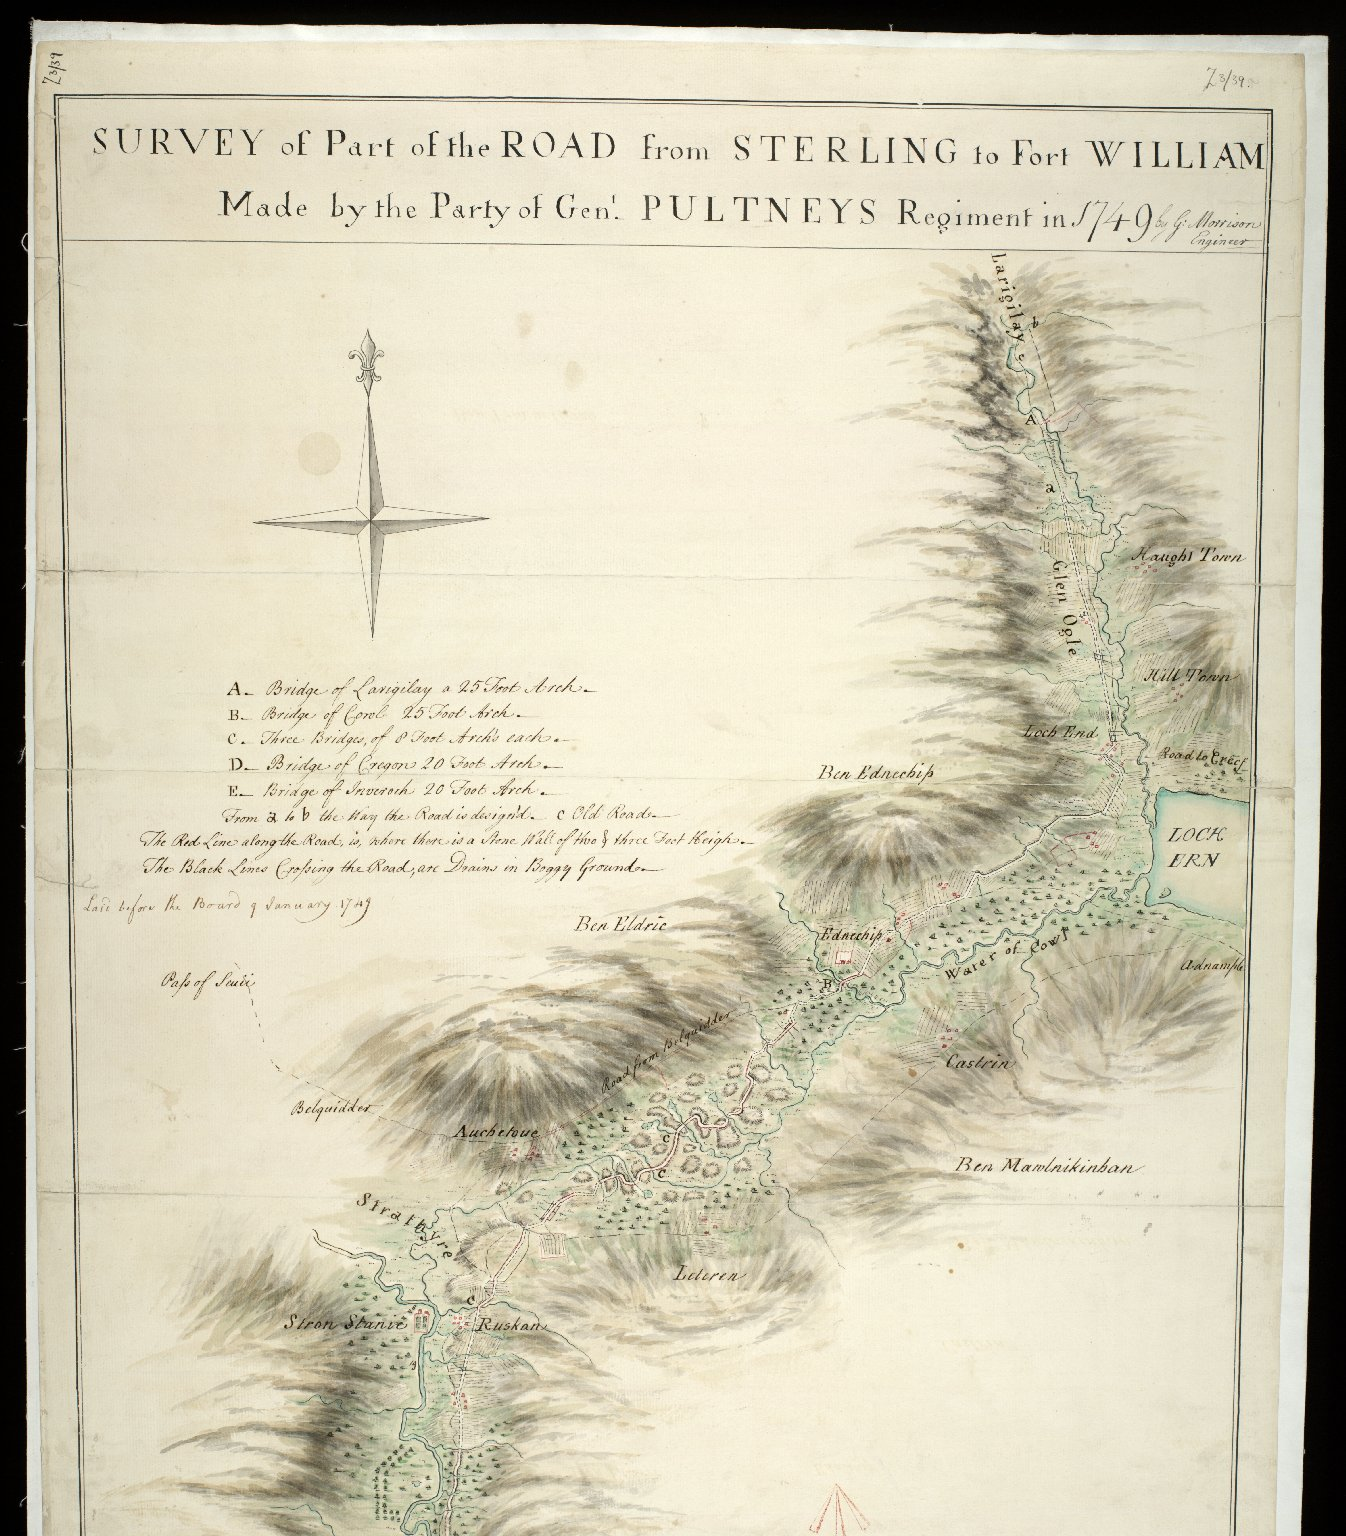 Survey of Part of the Road from Sterling to Fort William; Made by the Party of Genl. Pultneys Regiment in 1749 [1 of 2]